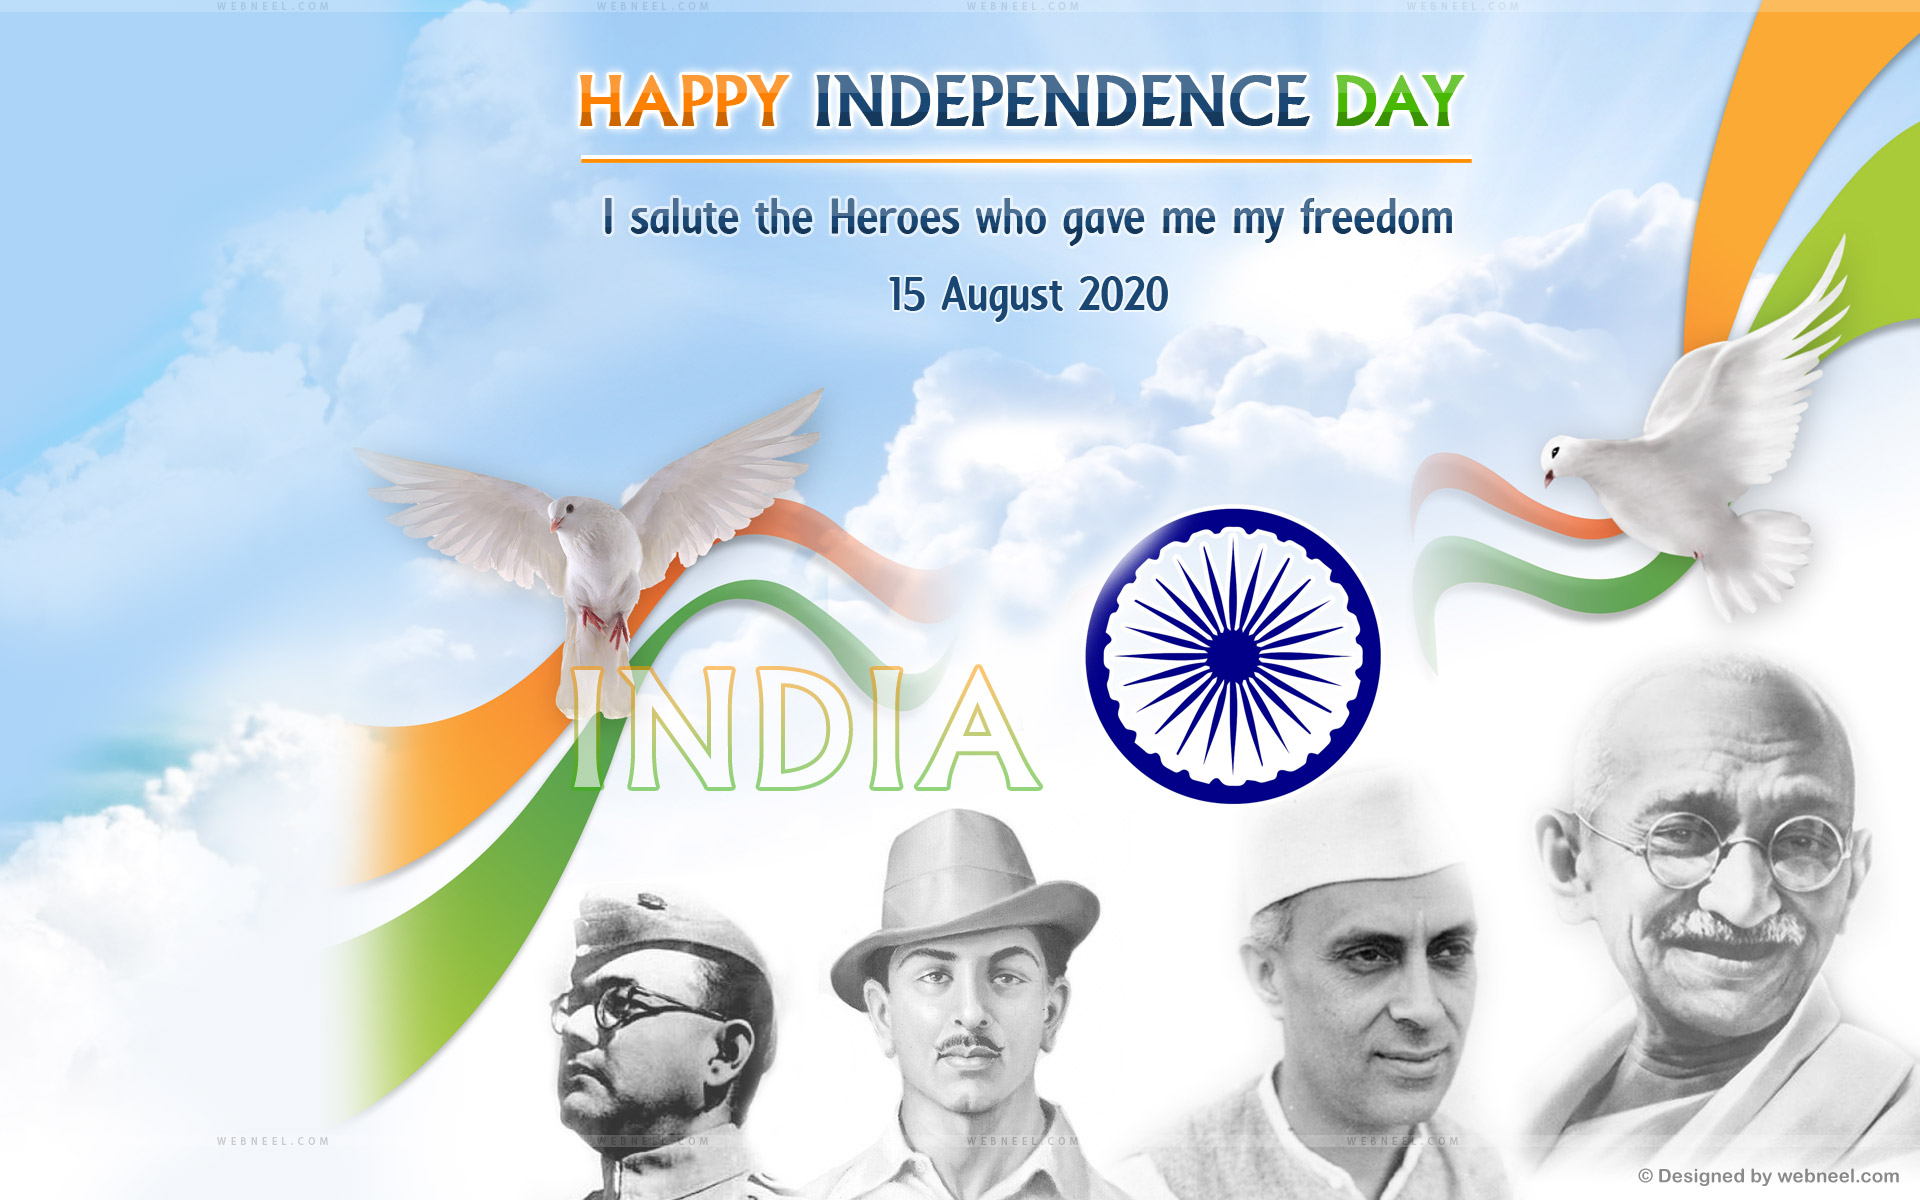 independence day greeting wallpaper 2020